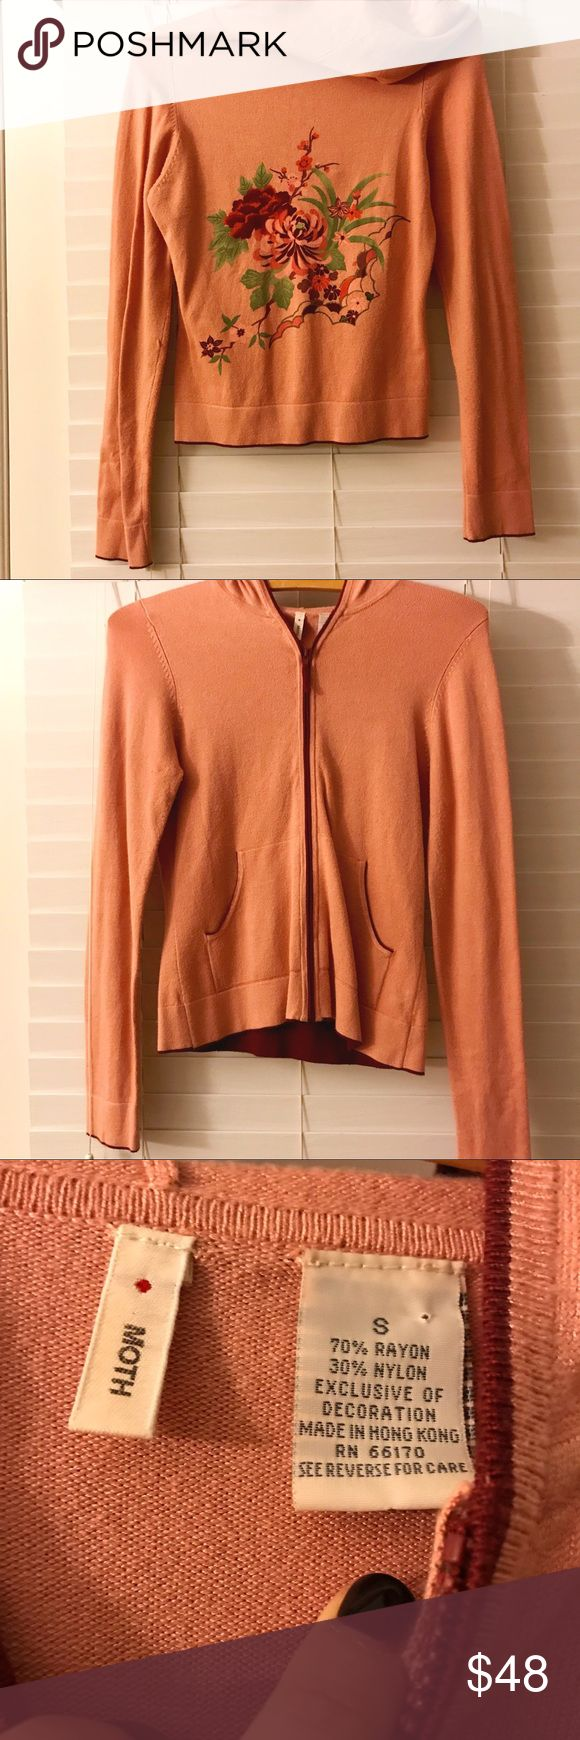 Anthropologie MOTH floral zip up hoodie Anthropologie MOTH floral zip up hoodie. Super soft and comfortable. Does have a small snag on the arm but isn't very noticeable. Anthropologie Jackets & Coats